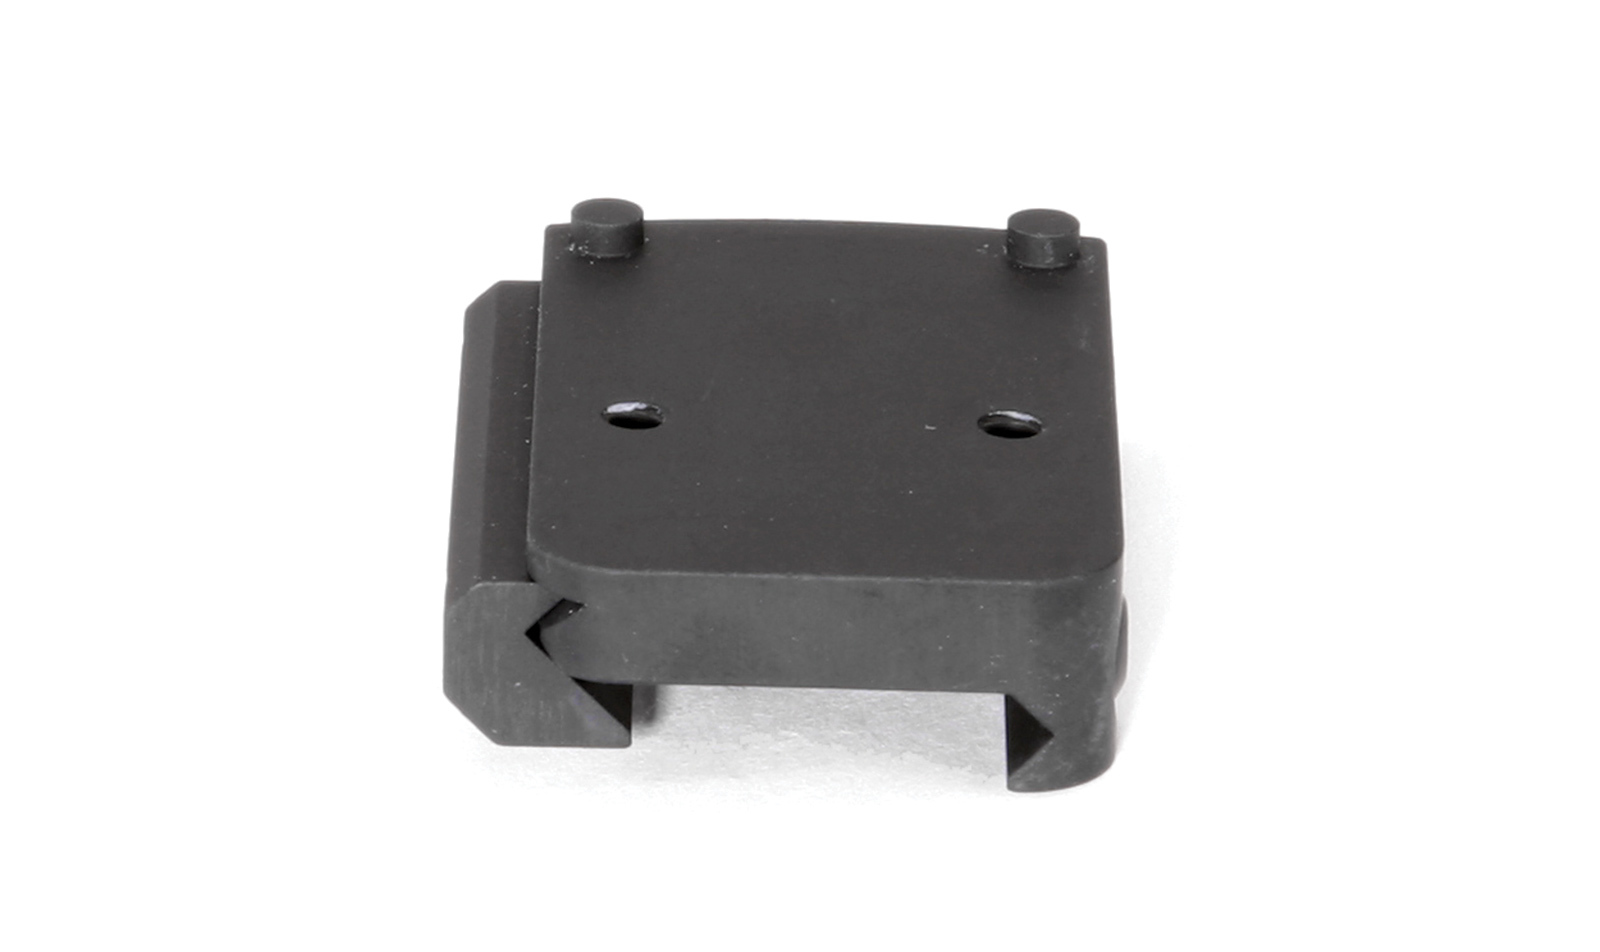 Low Picatinny Rail Mount for RMR®/SRO™